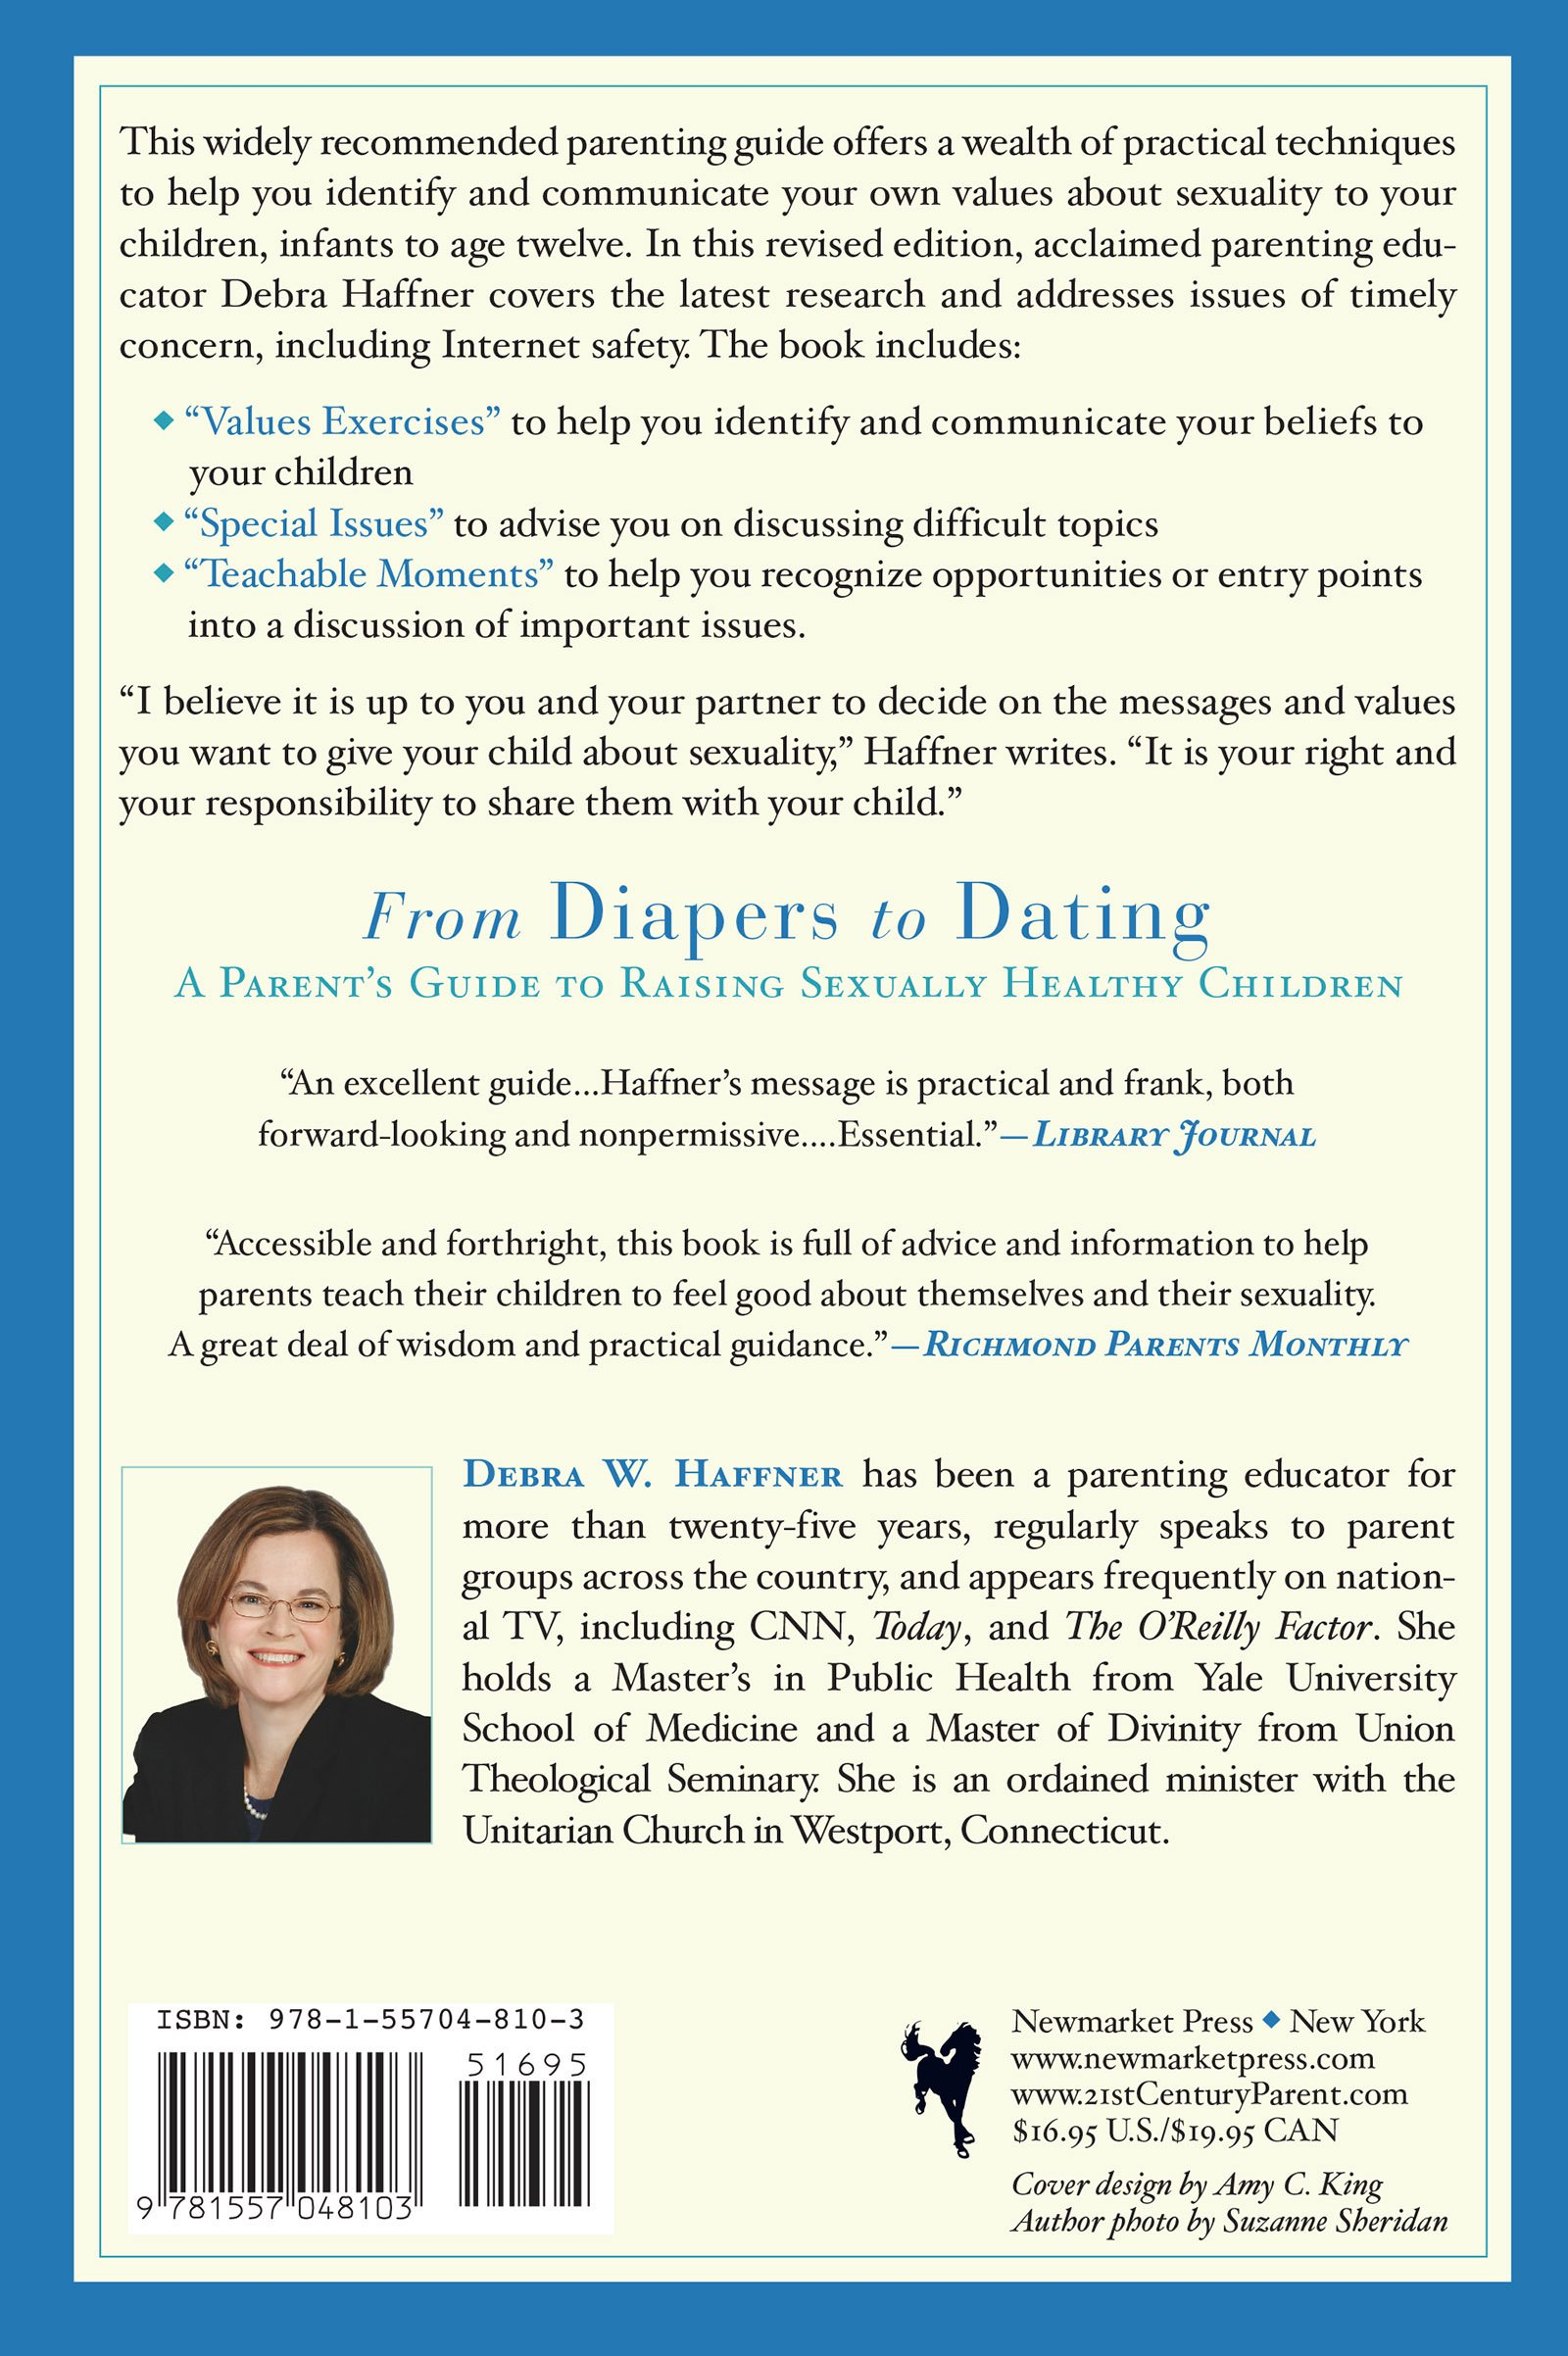 diapers to dating